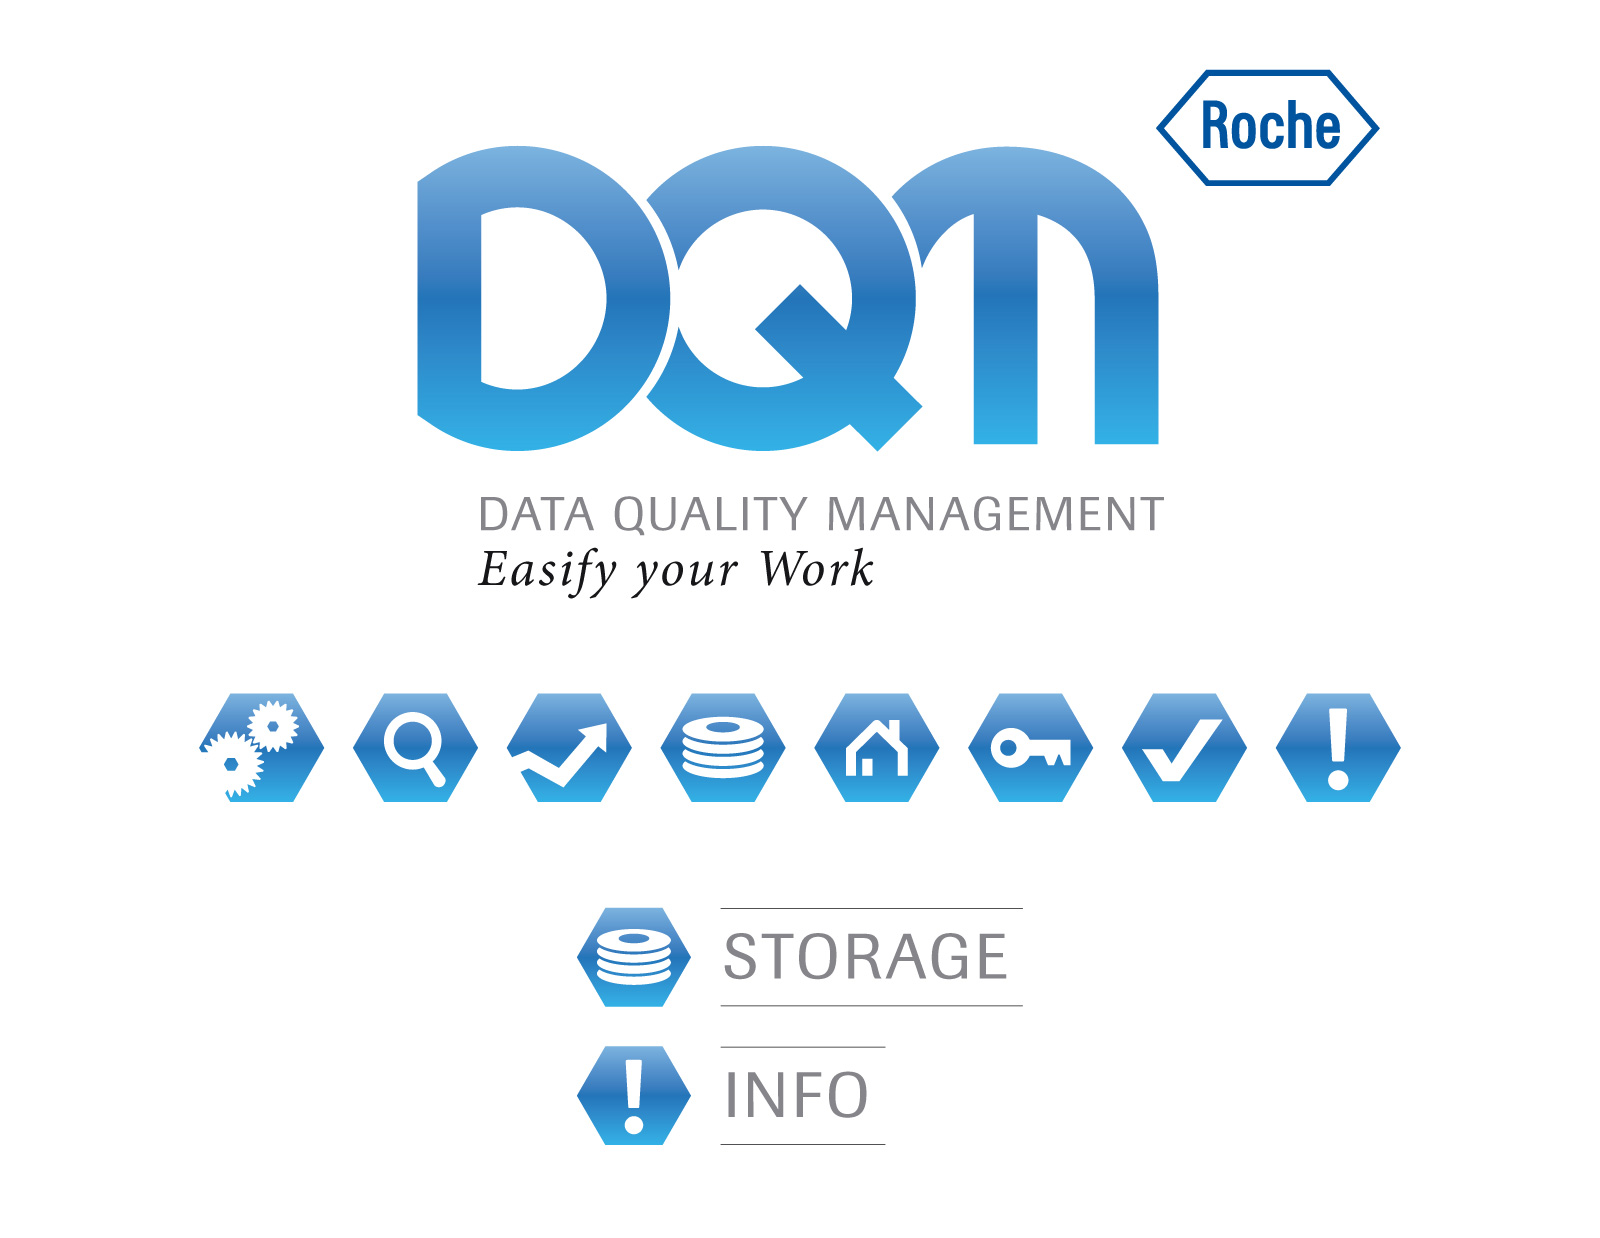 Roche Data Quality Management